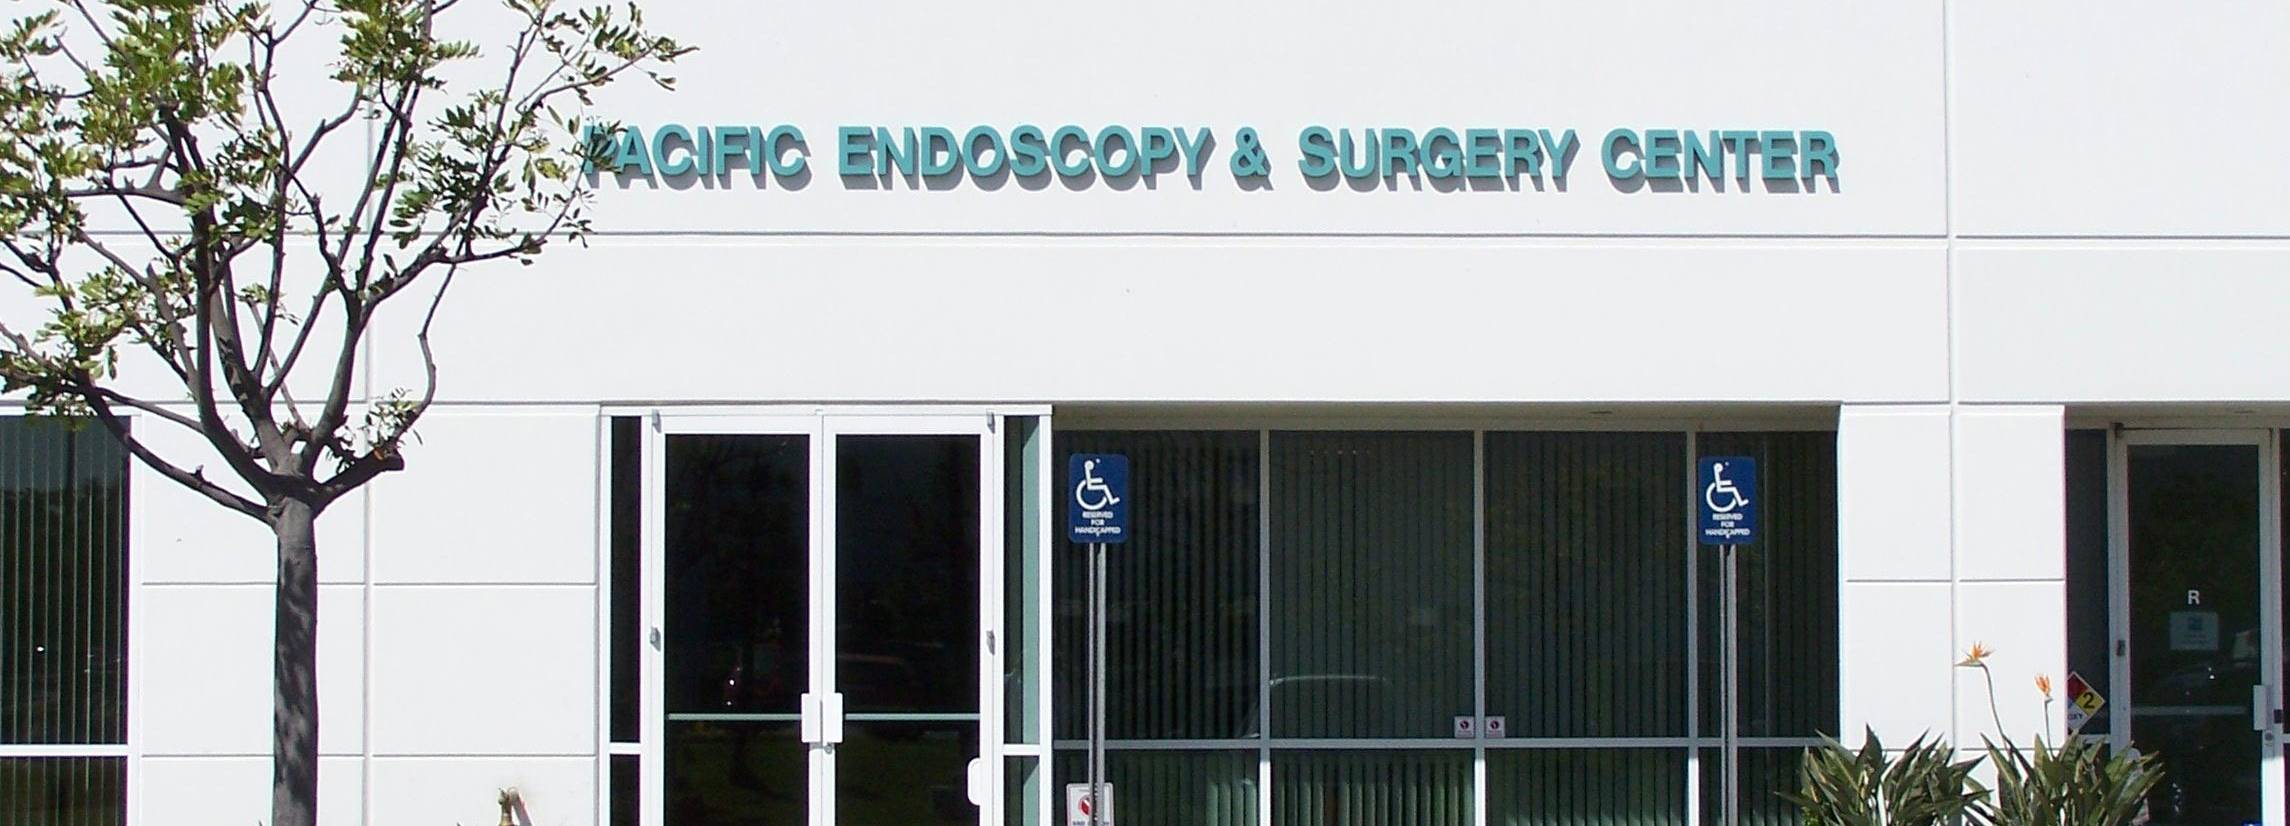 Pacific Endoscopy and Surgery Center Building